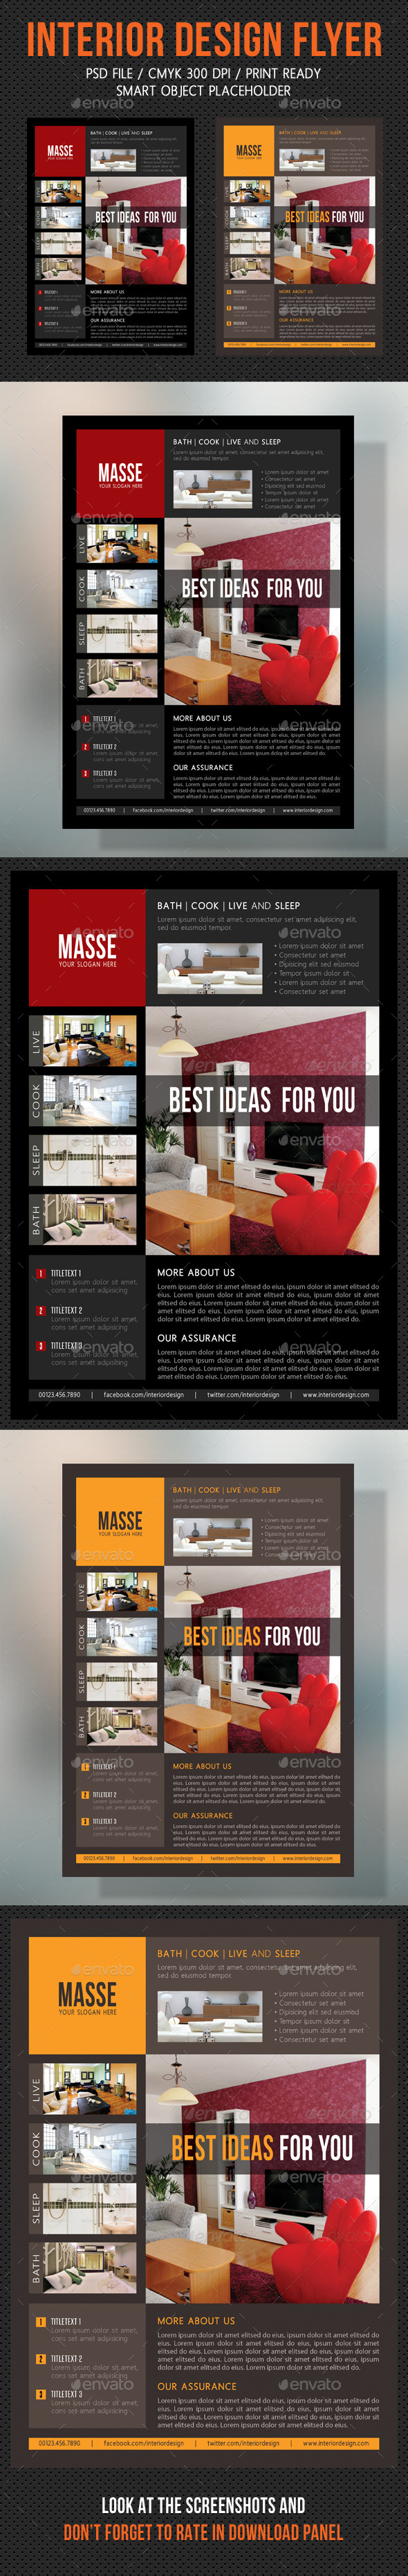 GraphicRiver Interior Design Flexible Flyer V03 10587304